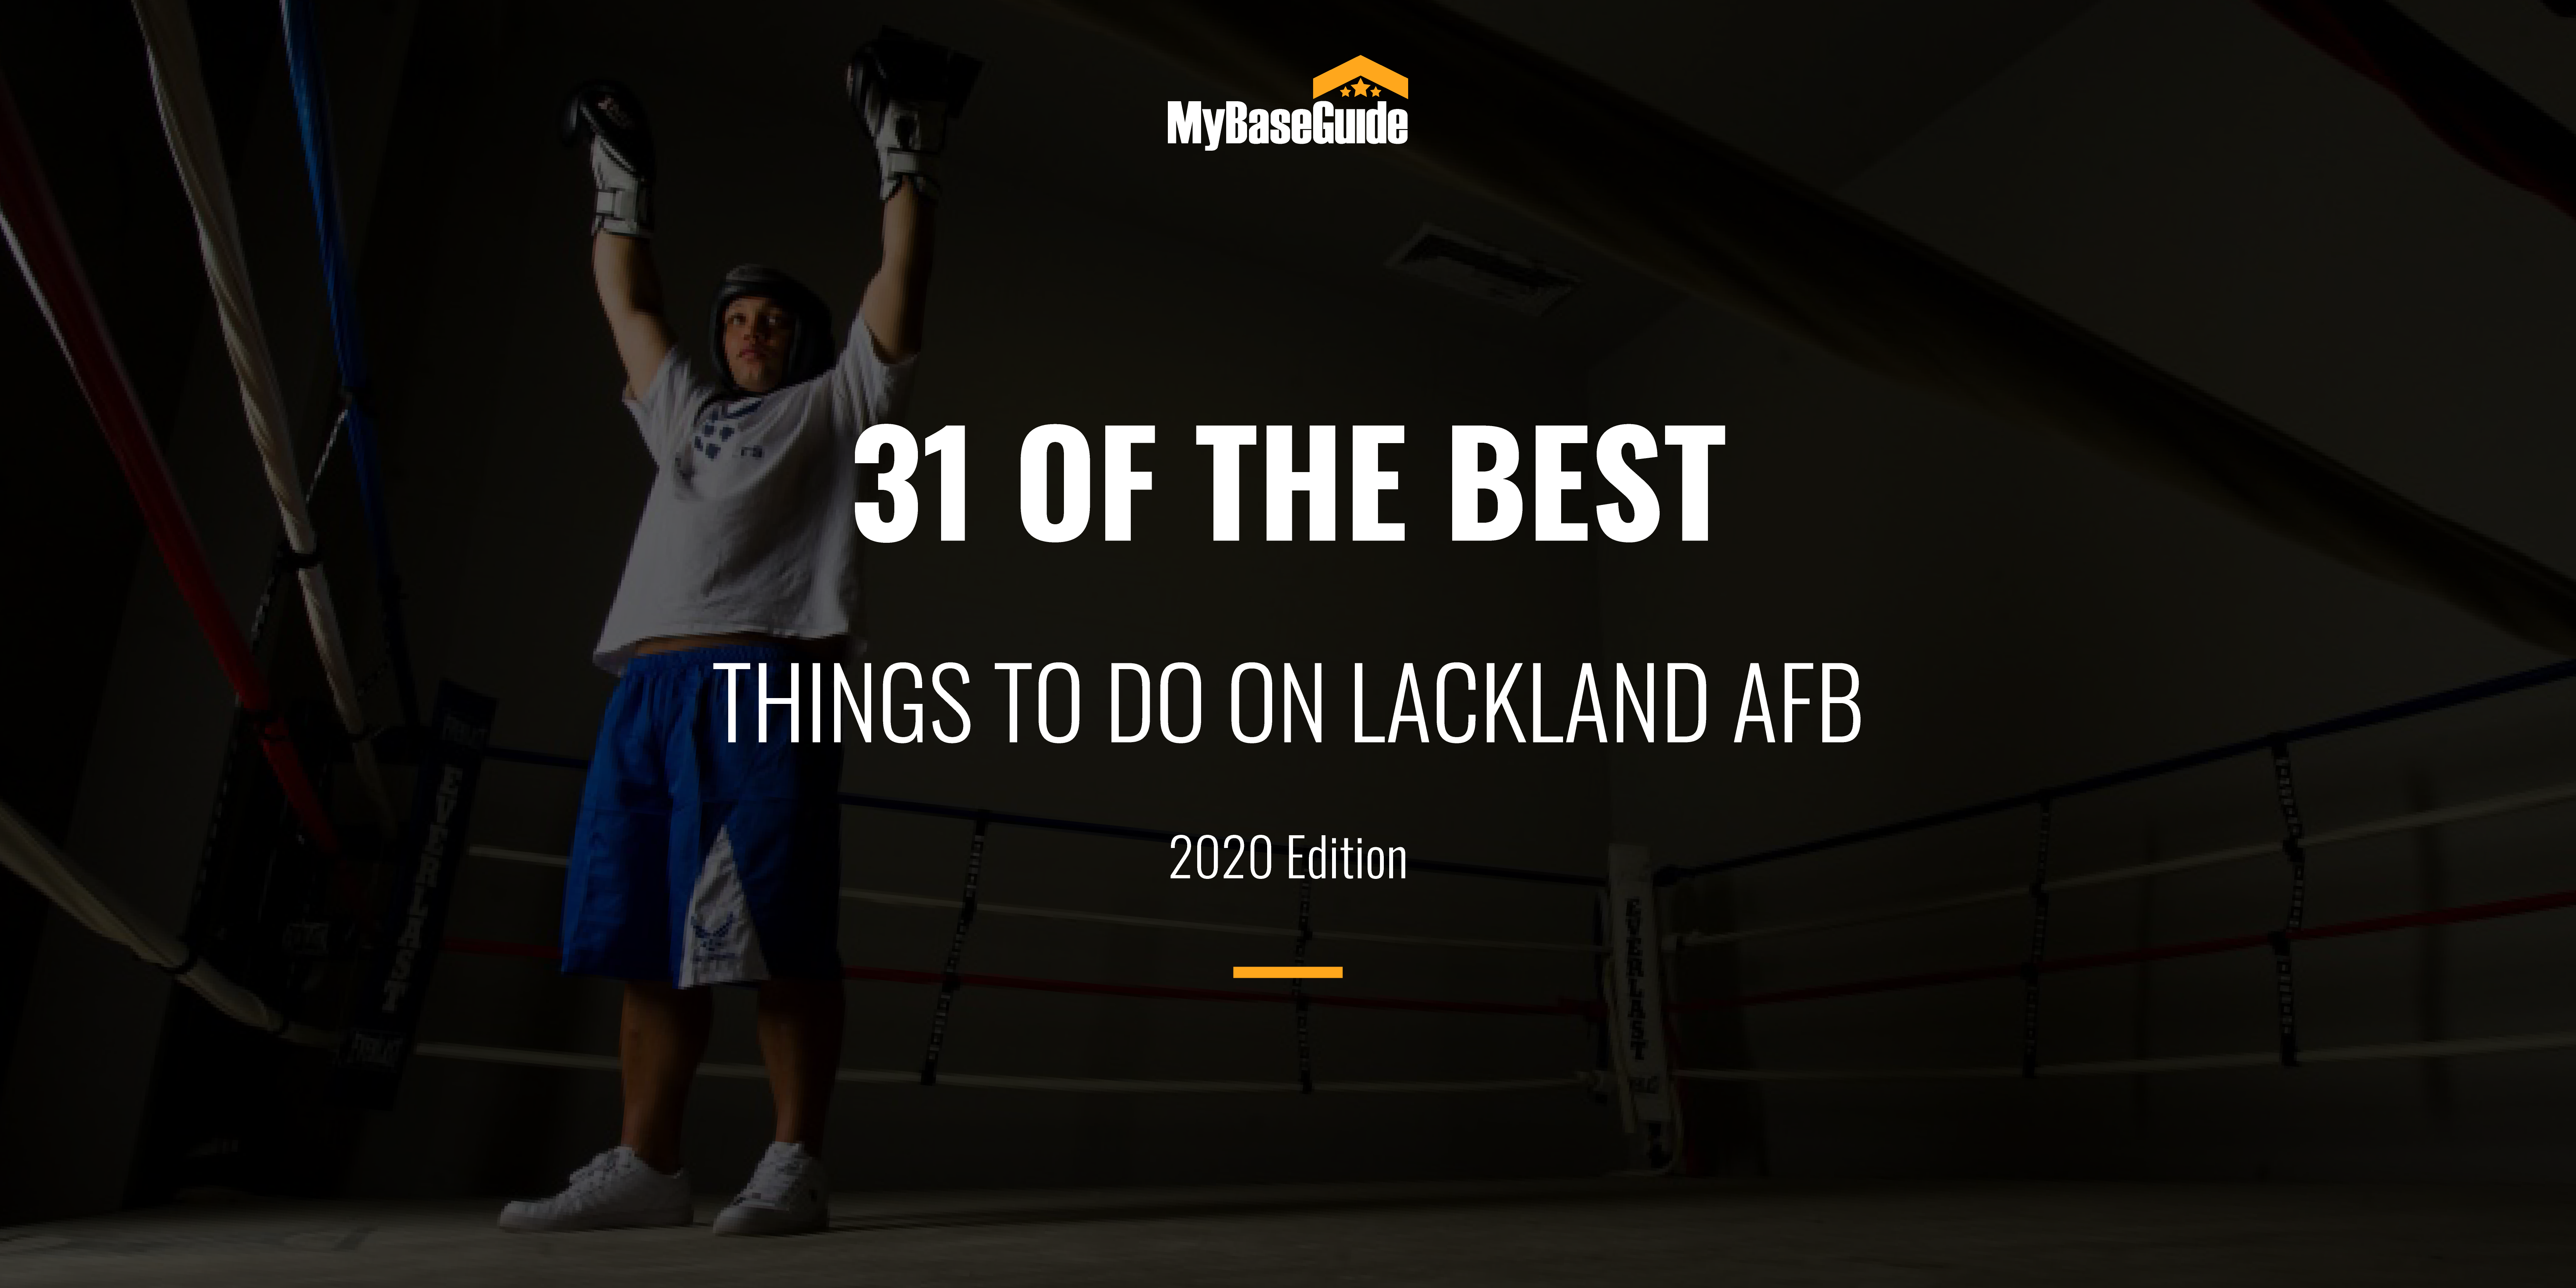 31 Of the Best Things to Do on Lackland AFB